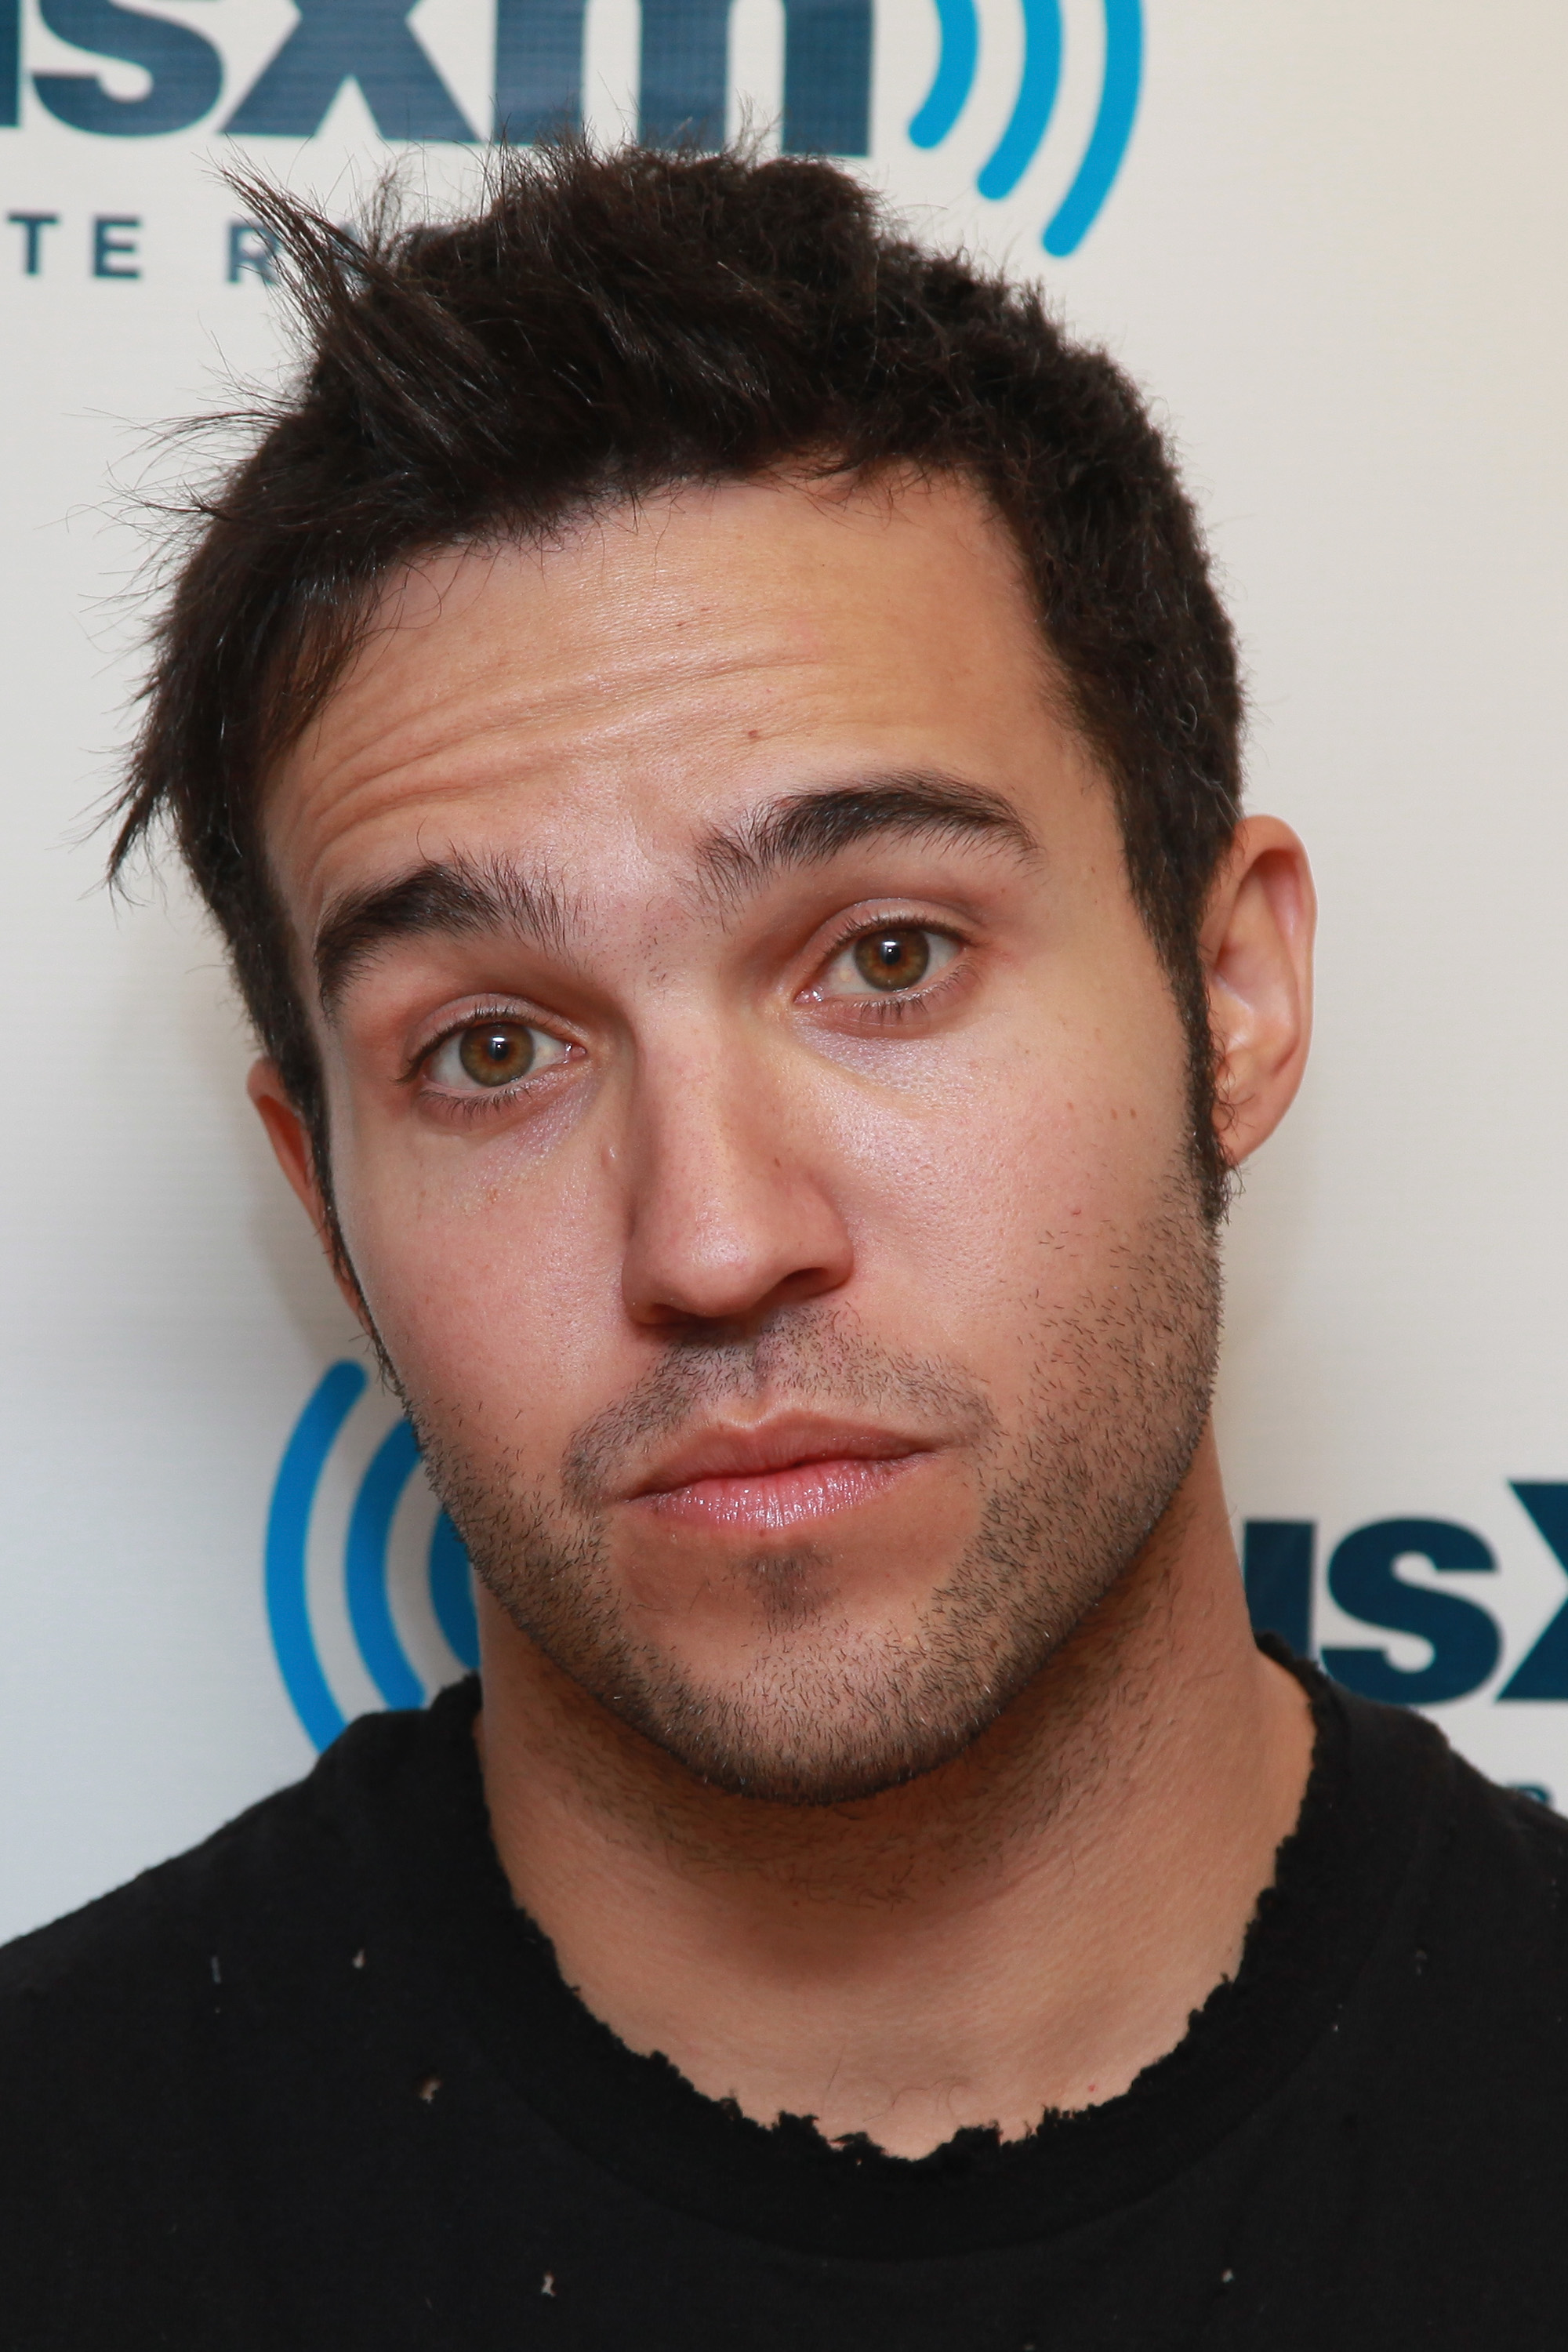 pete wentz 2007pete wentz 2007, pete wentz 2016, pete wentz 2017, pete wentz height, pete wentz 2015, pete wentz png, pete wentz gif, pete wentz son, pete wentz blonde, pete wentz 2005, pete wentz meagan camper, pete wentz is the only reason we're famous lyrics, pete wentz house, pete wentz 2008, pete wentz i don't care, pete wentz bass guitar, pete wentz makeup, pete wentz one tree hill, pete wentz talking about his depression, pete wentz dog